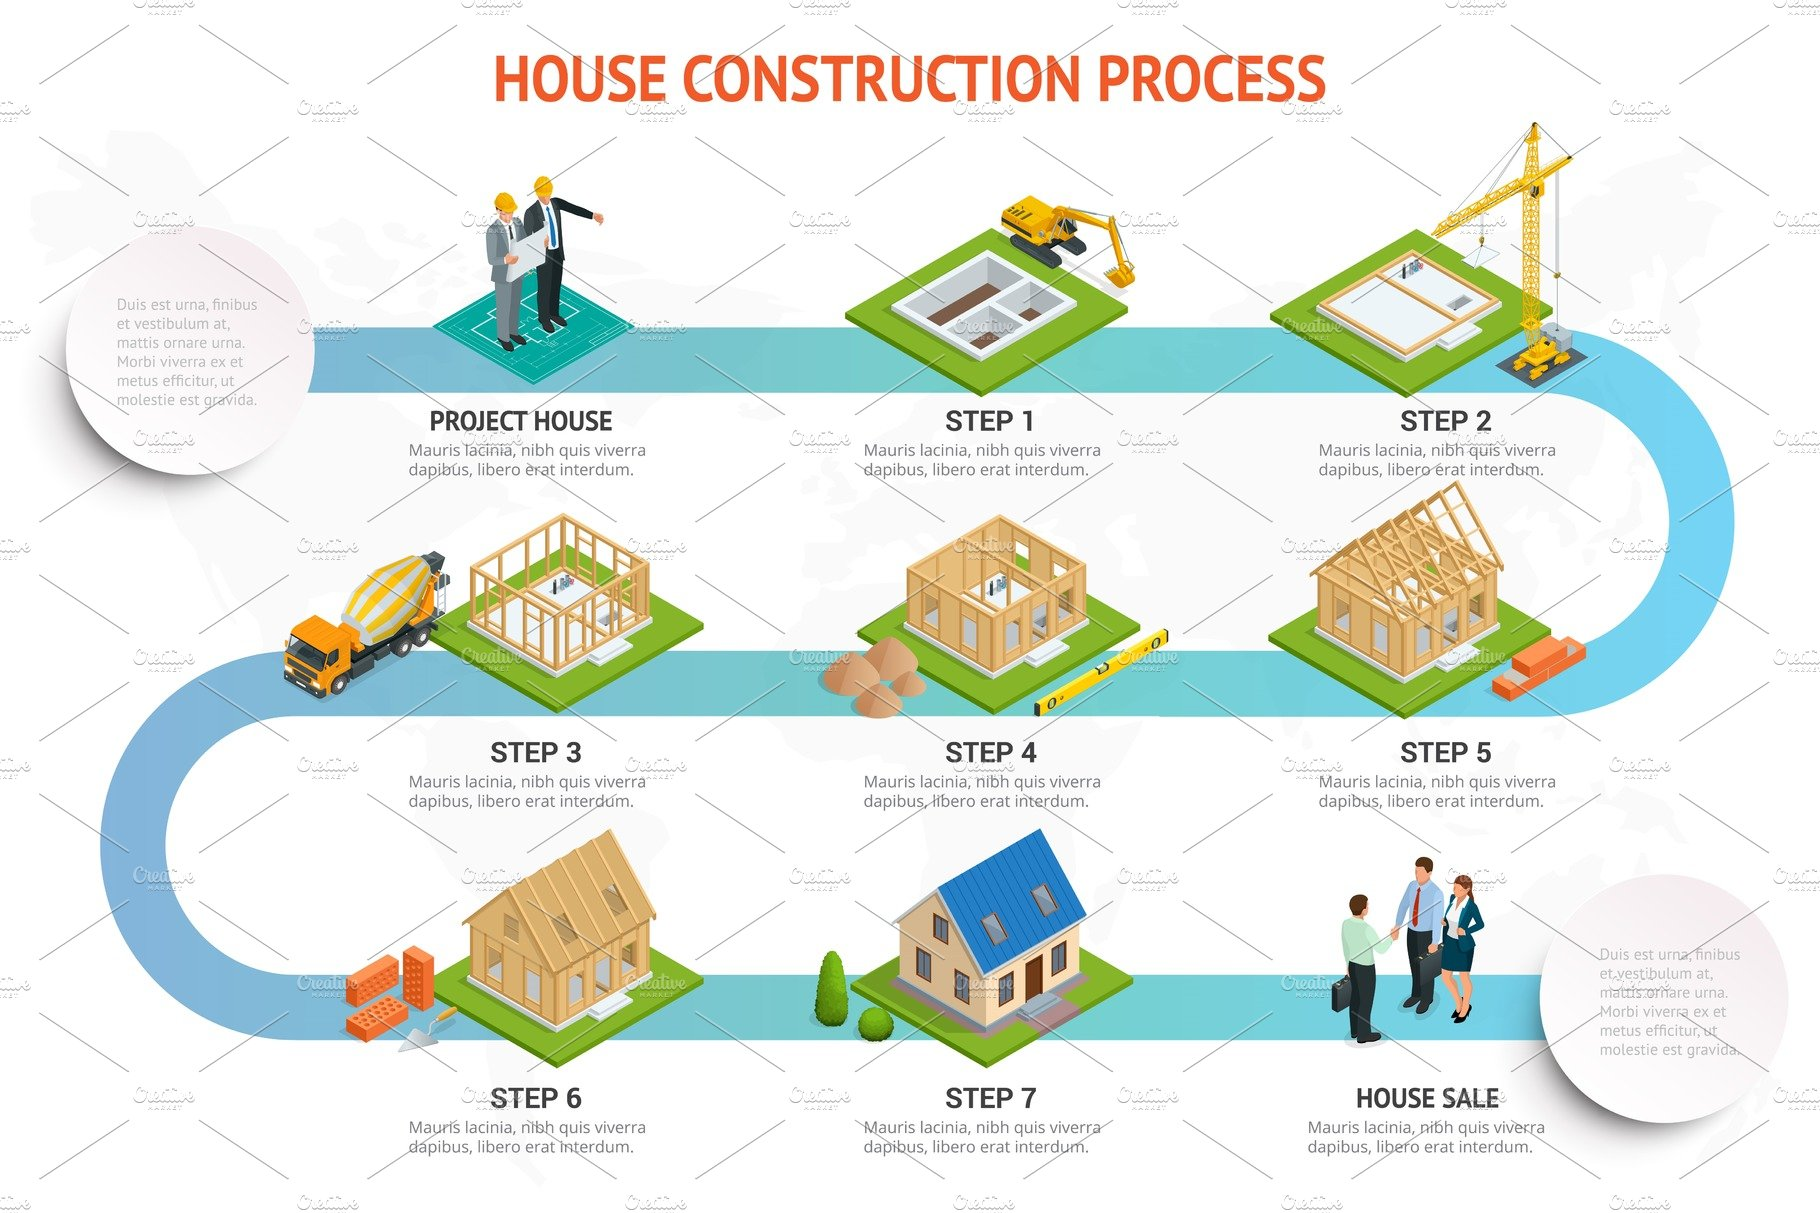 Building and construction process guide australia